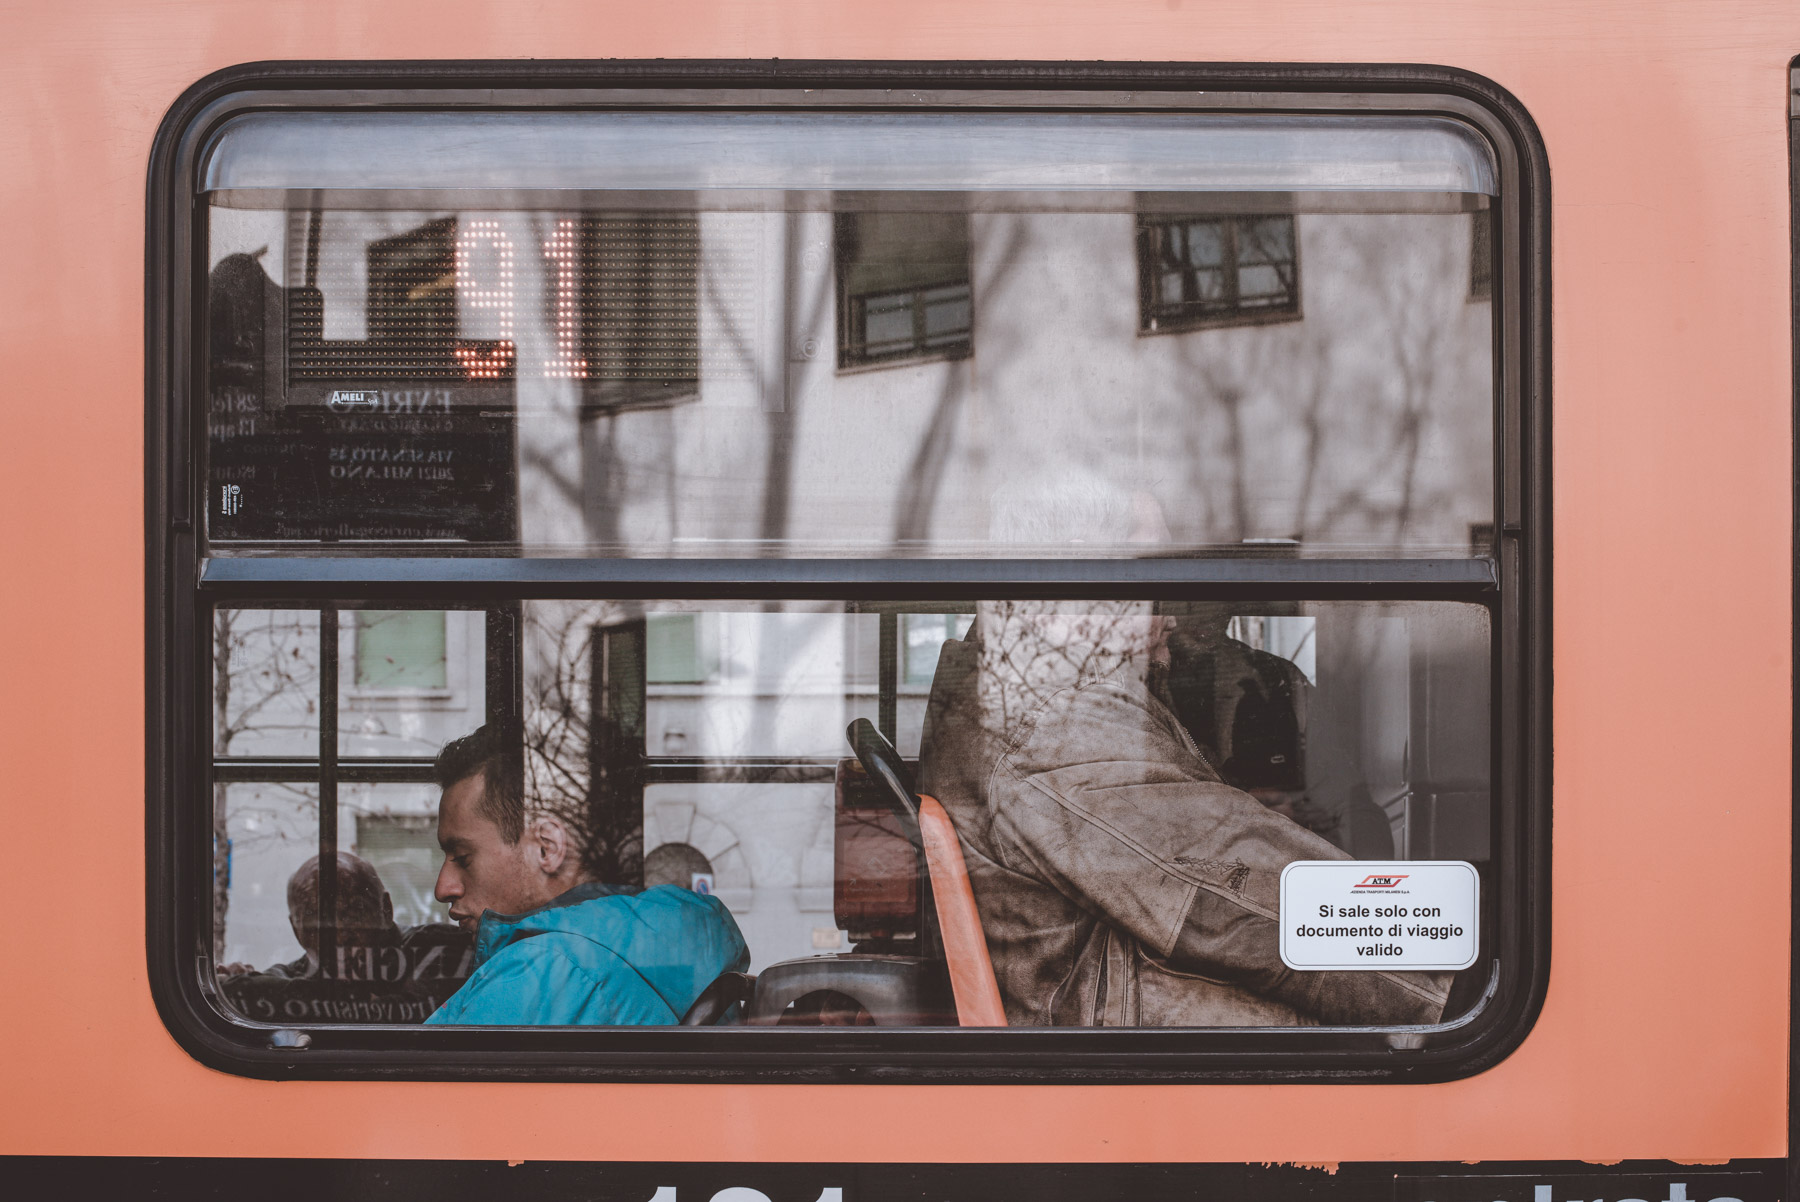 a street photograph showing some reflections and some people on the bus in the city of Milan